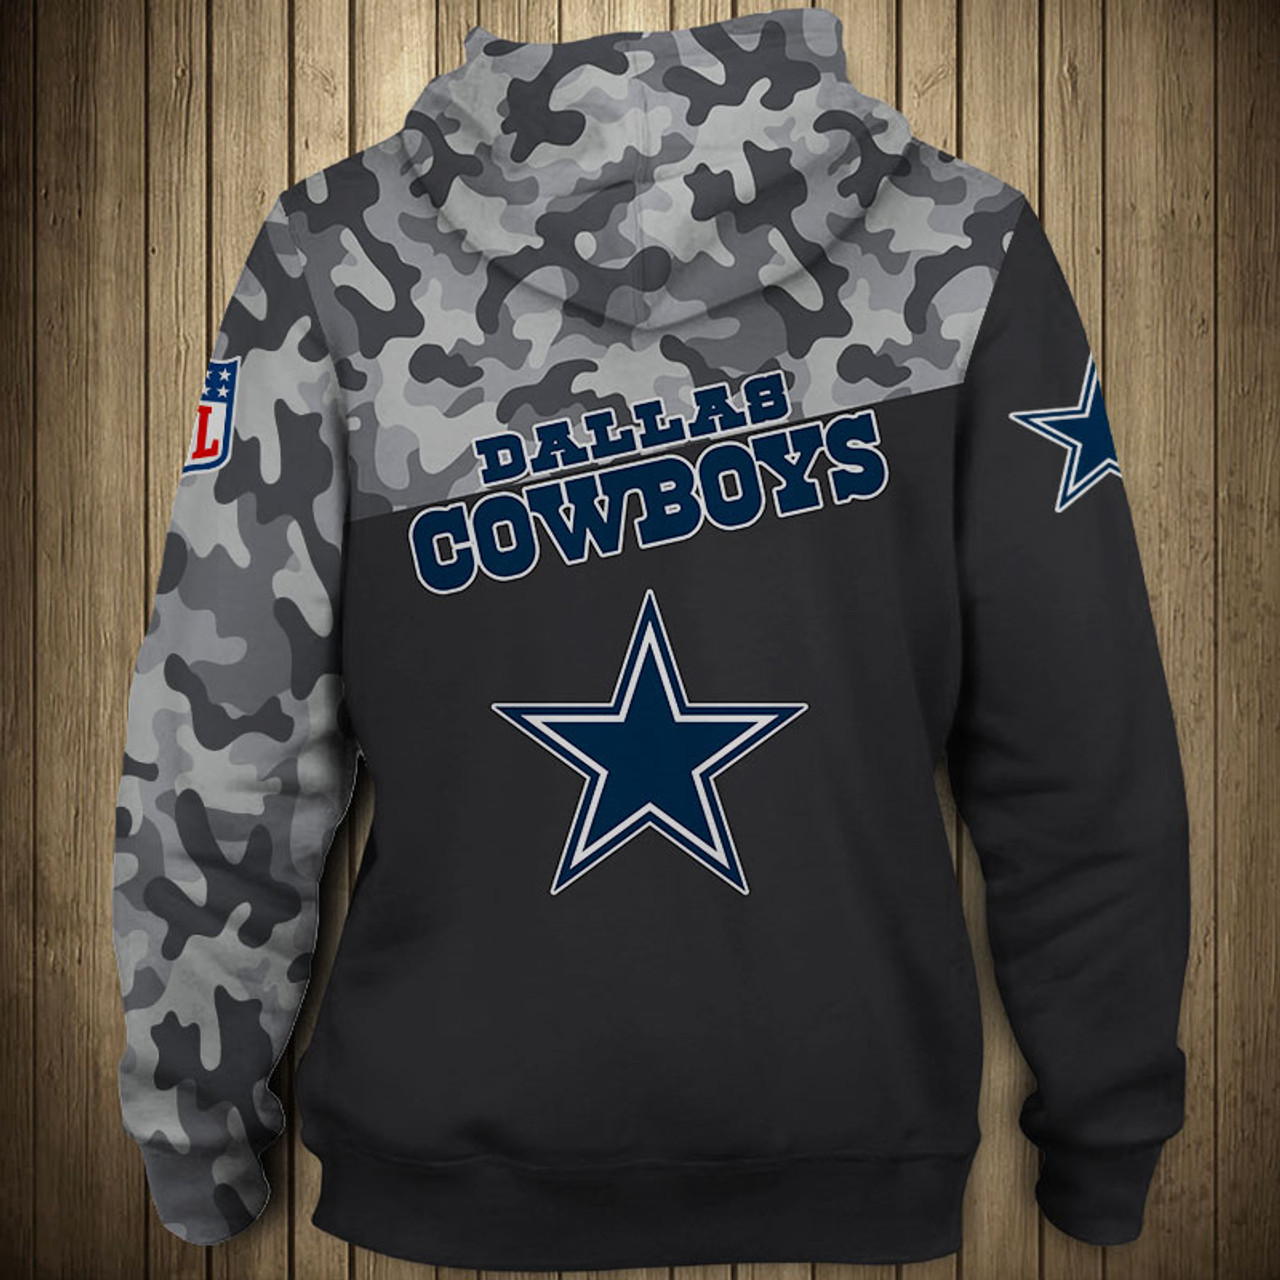 another chance 31a25 b432e **(OFFICIAL-N.F.L.NEW-DALLAS-COWBOYS-CAMO.DESIGN-PULLOVER-HOODIES/3D-CUSTOM-COWBOYS-LOGOS  & OFFICIAL-COWBOYS-TEAM-COLORS/NICE-3D-DETAILED-GRAPHIC-PRIN...